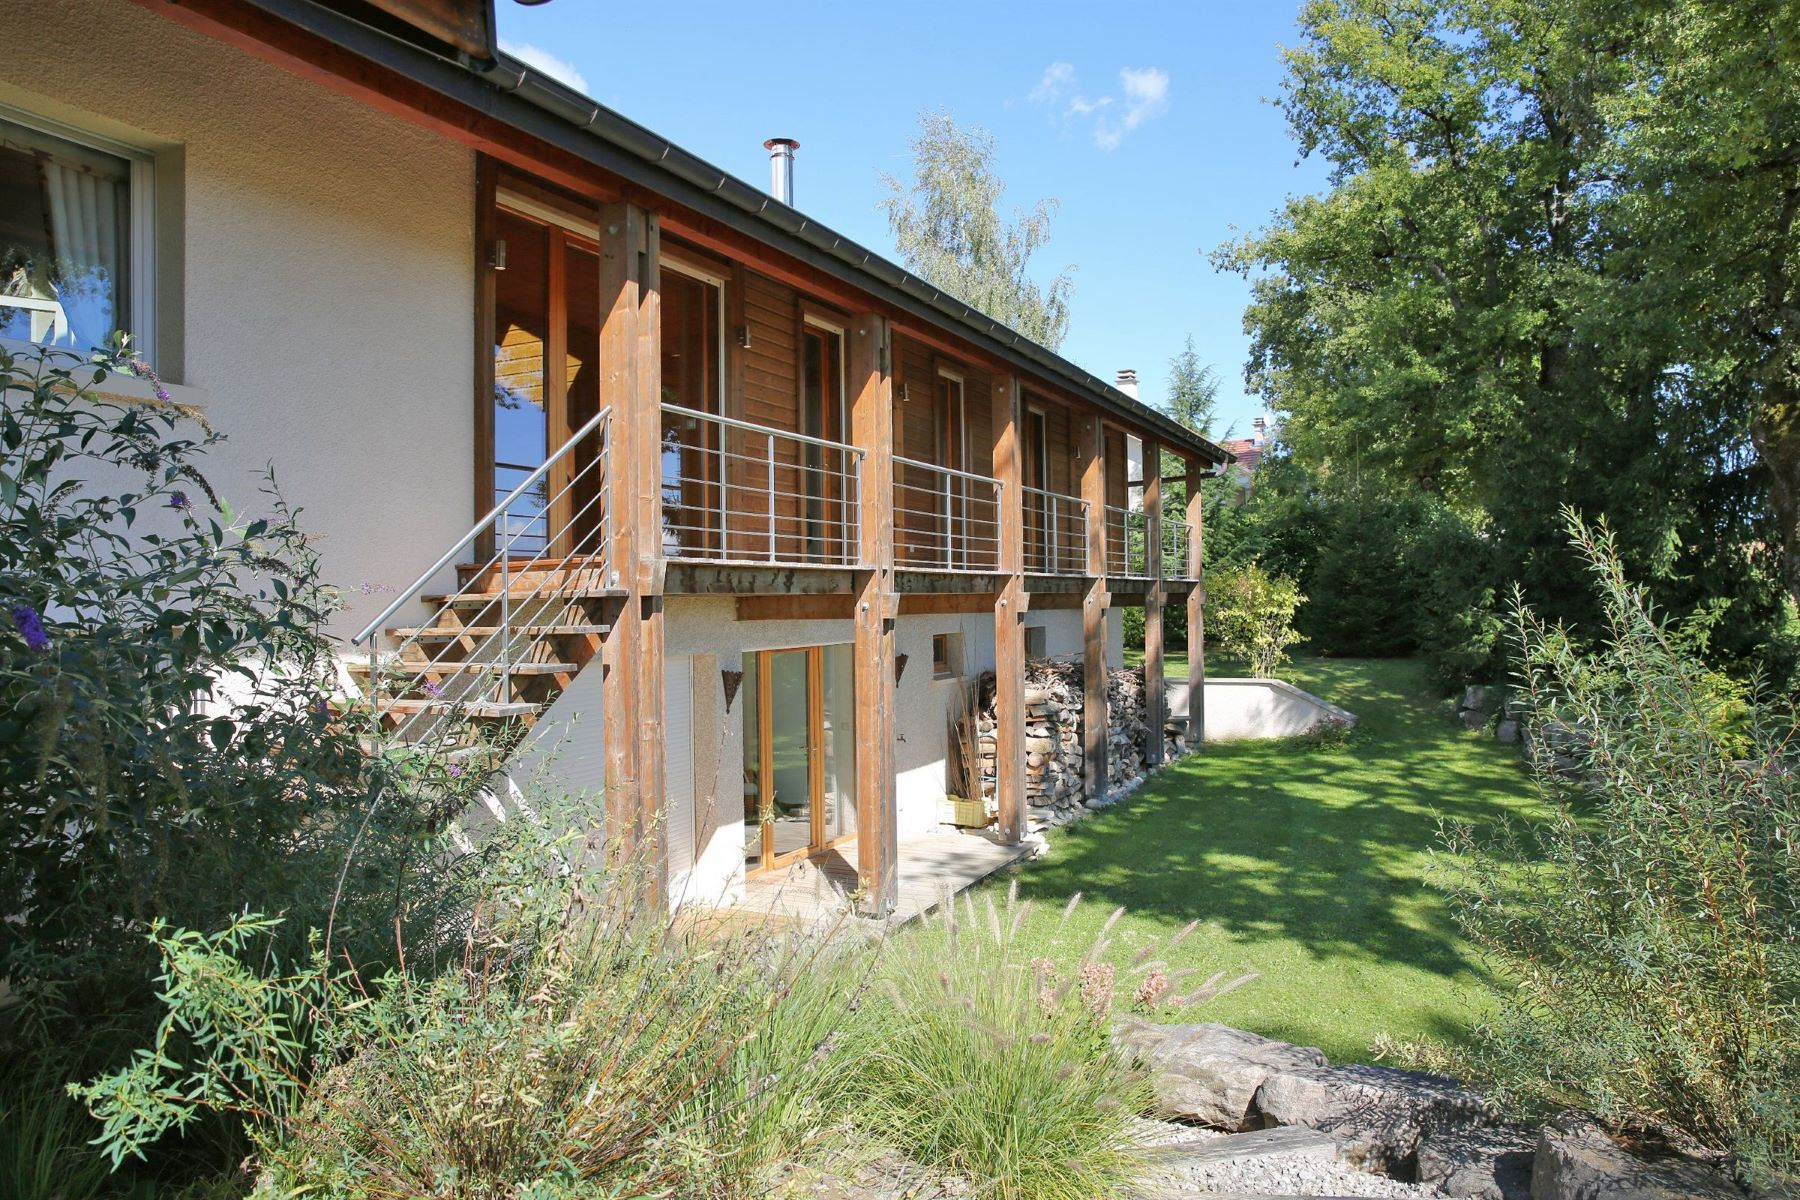 Single Family Home for Sale at Large property close to Swiss border Divonne Les Bains, Rhone-Alpes 01220 France